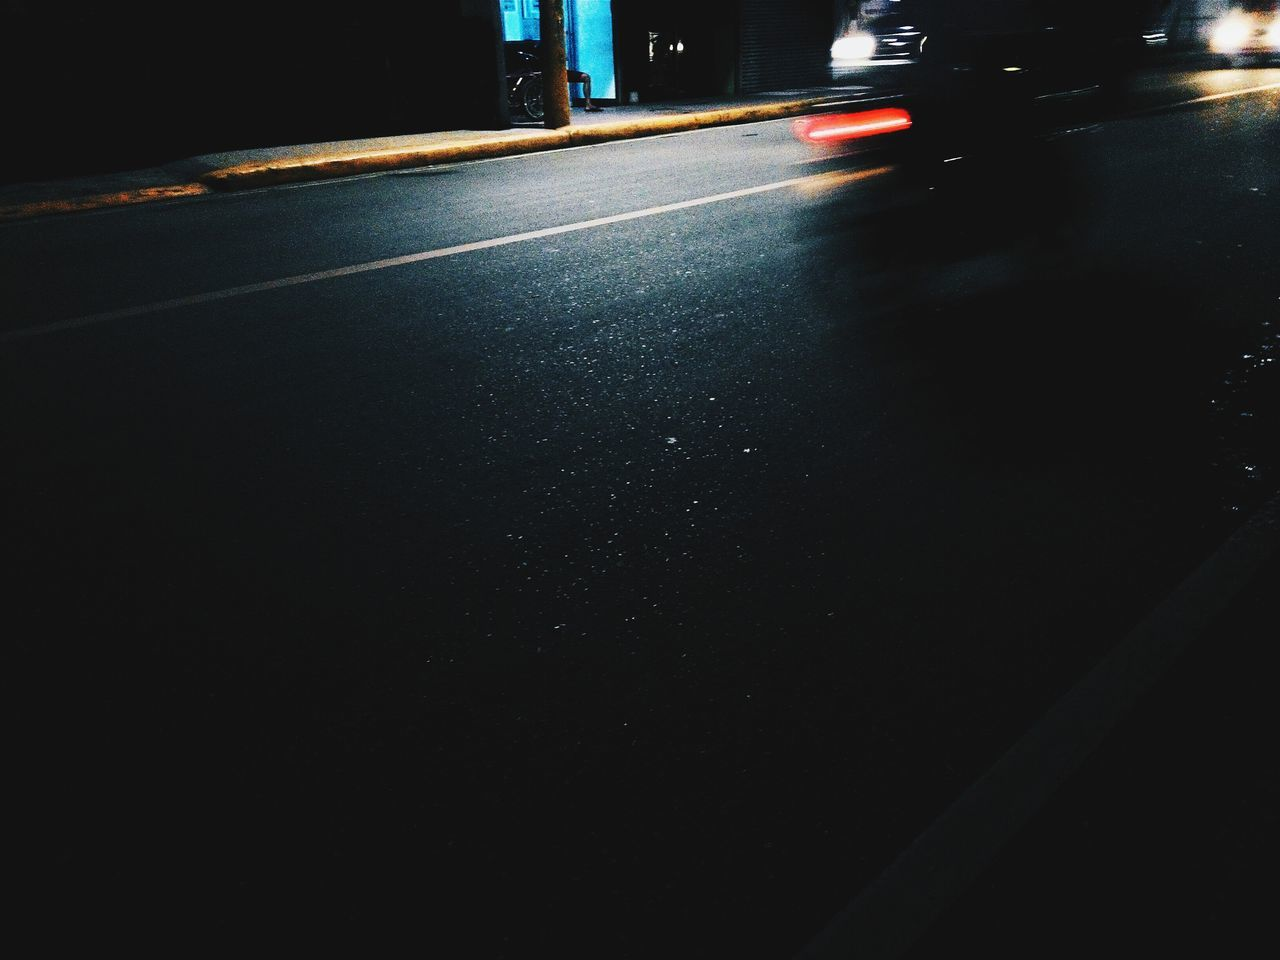 Blur Image Of Motorcycle On Road At Night